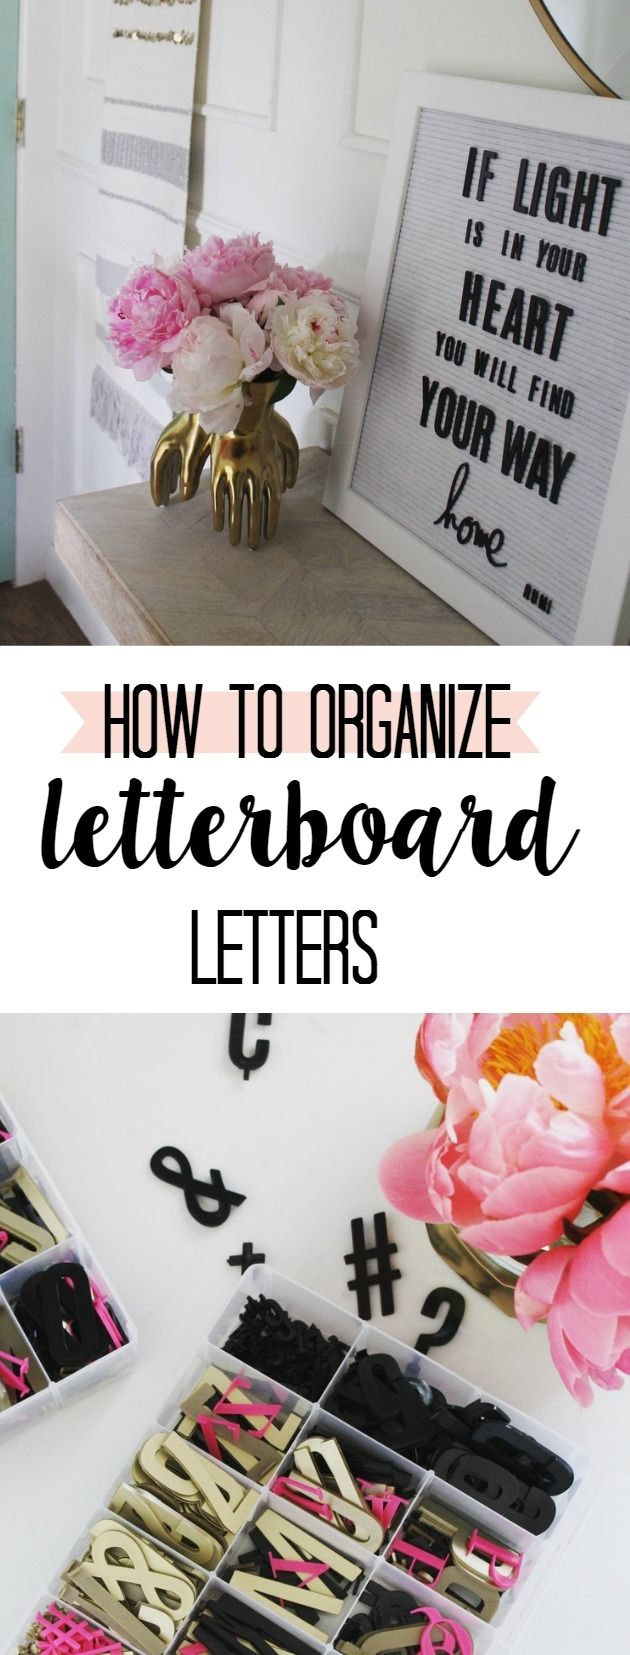 How to Organize Letterboard Letters from my @heidiswapp board